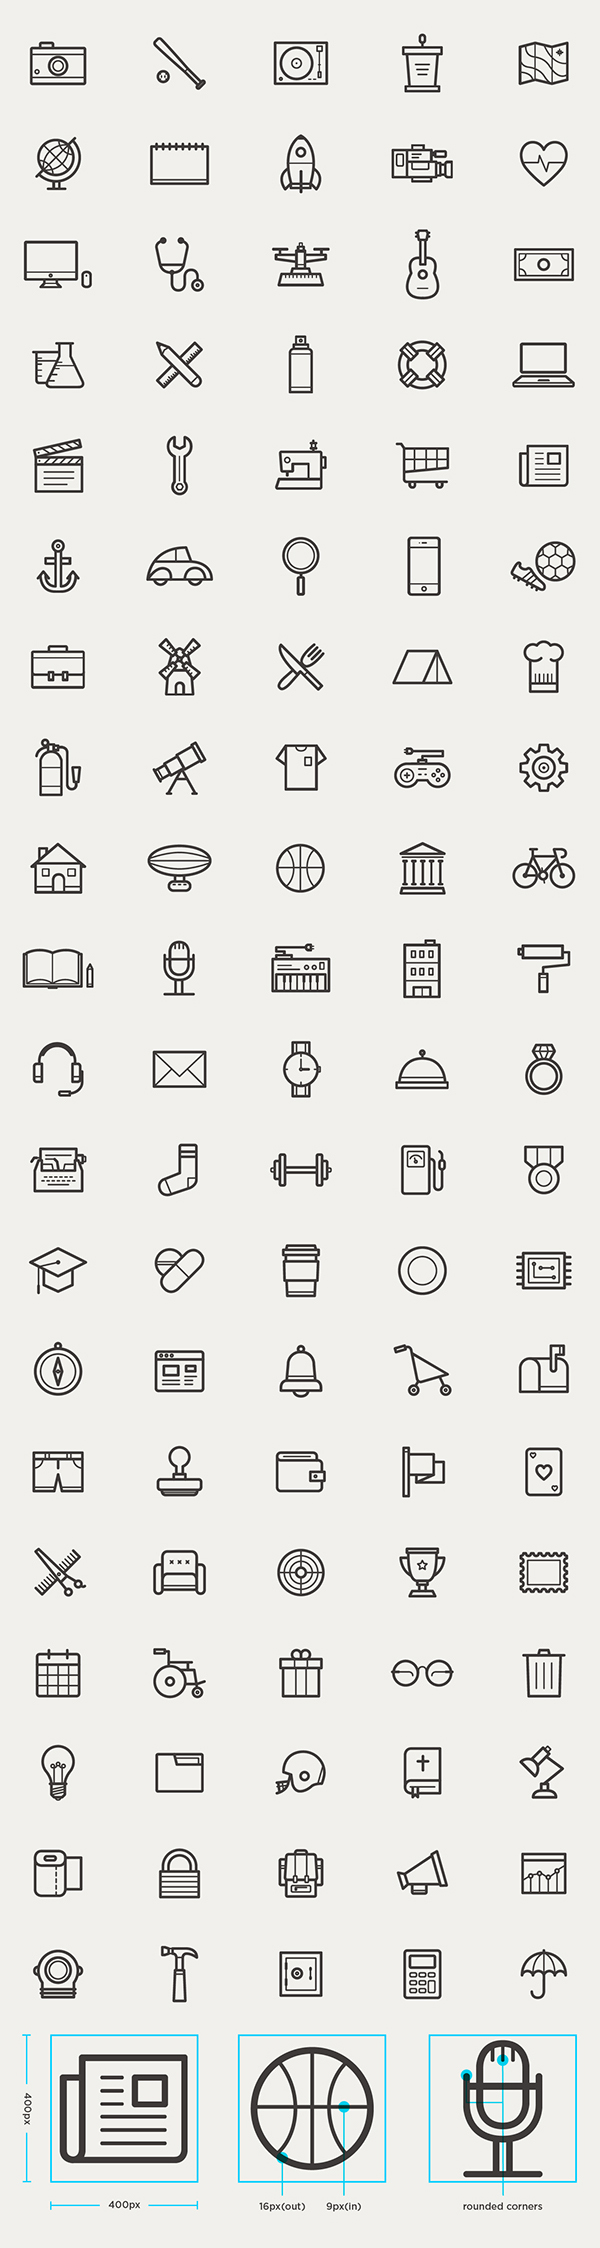 free outline icons set 95 icons - Free Resume Icons